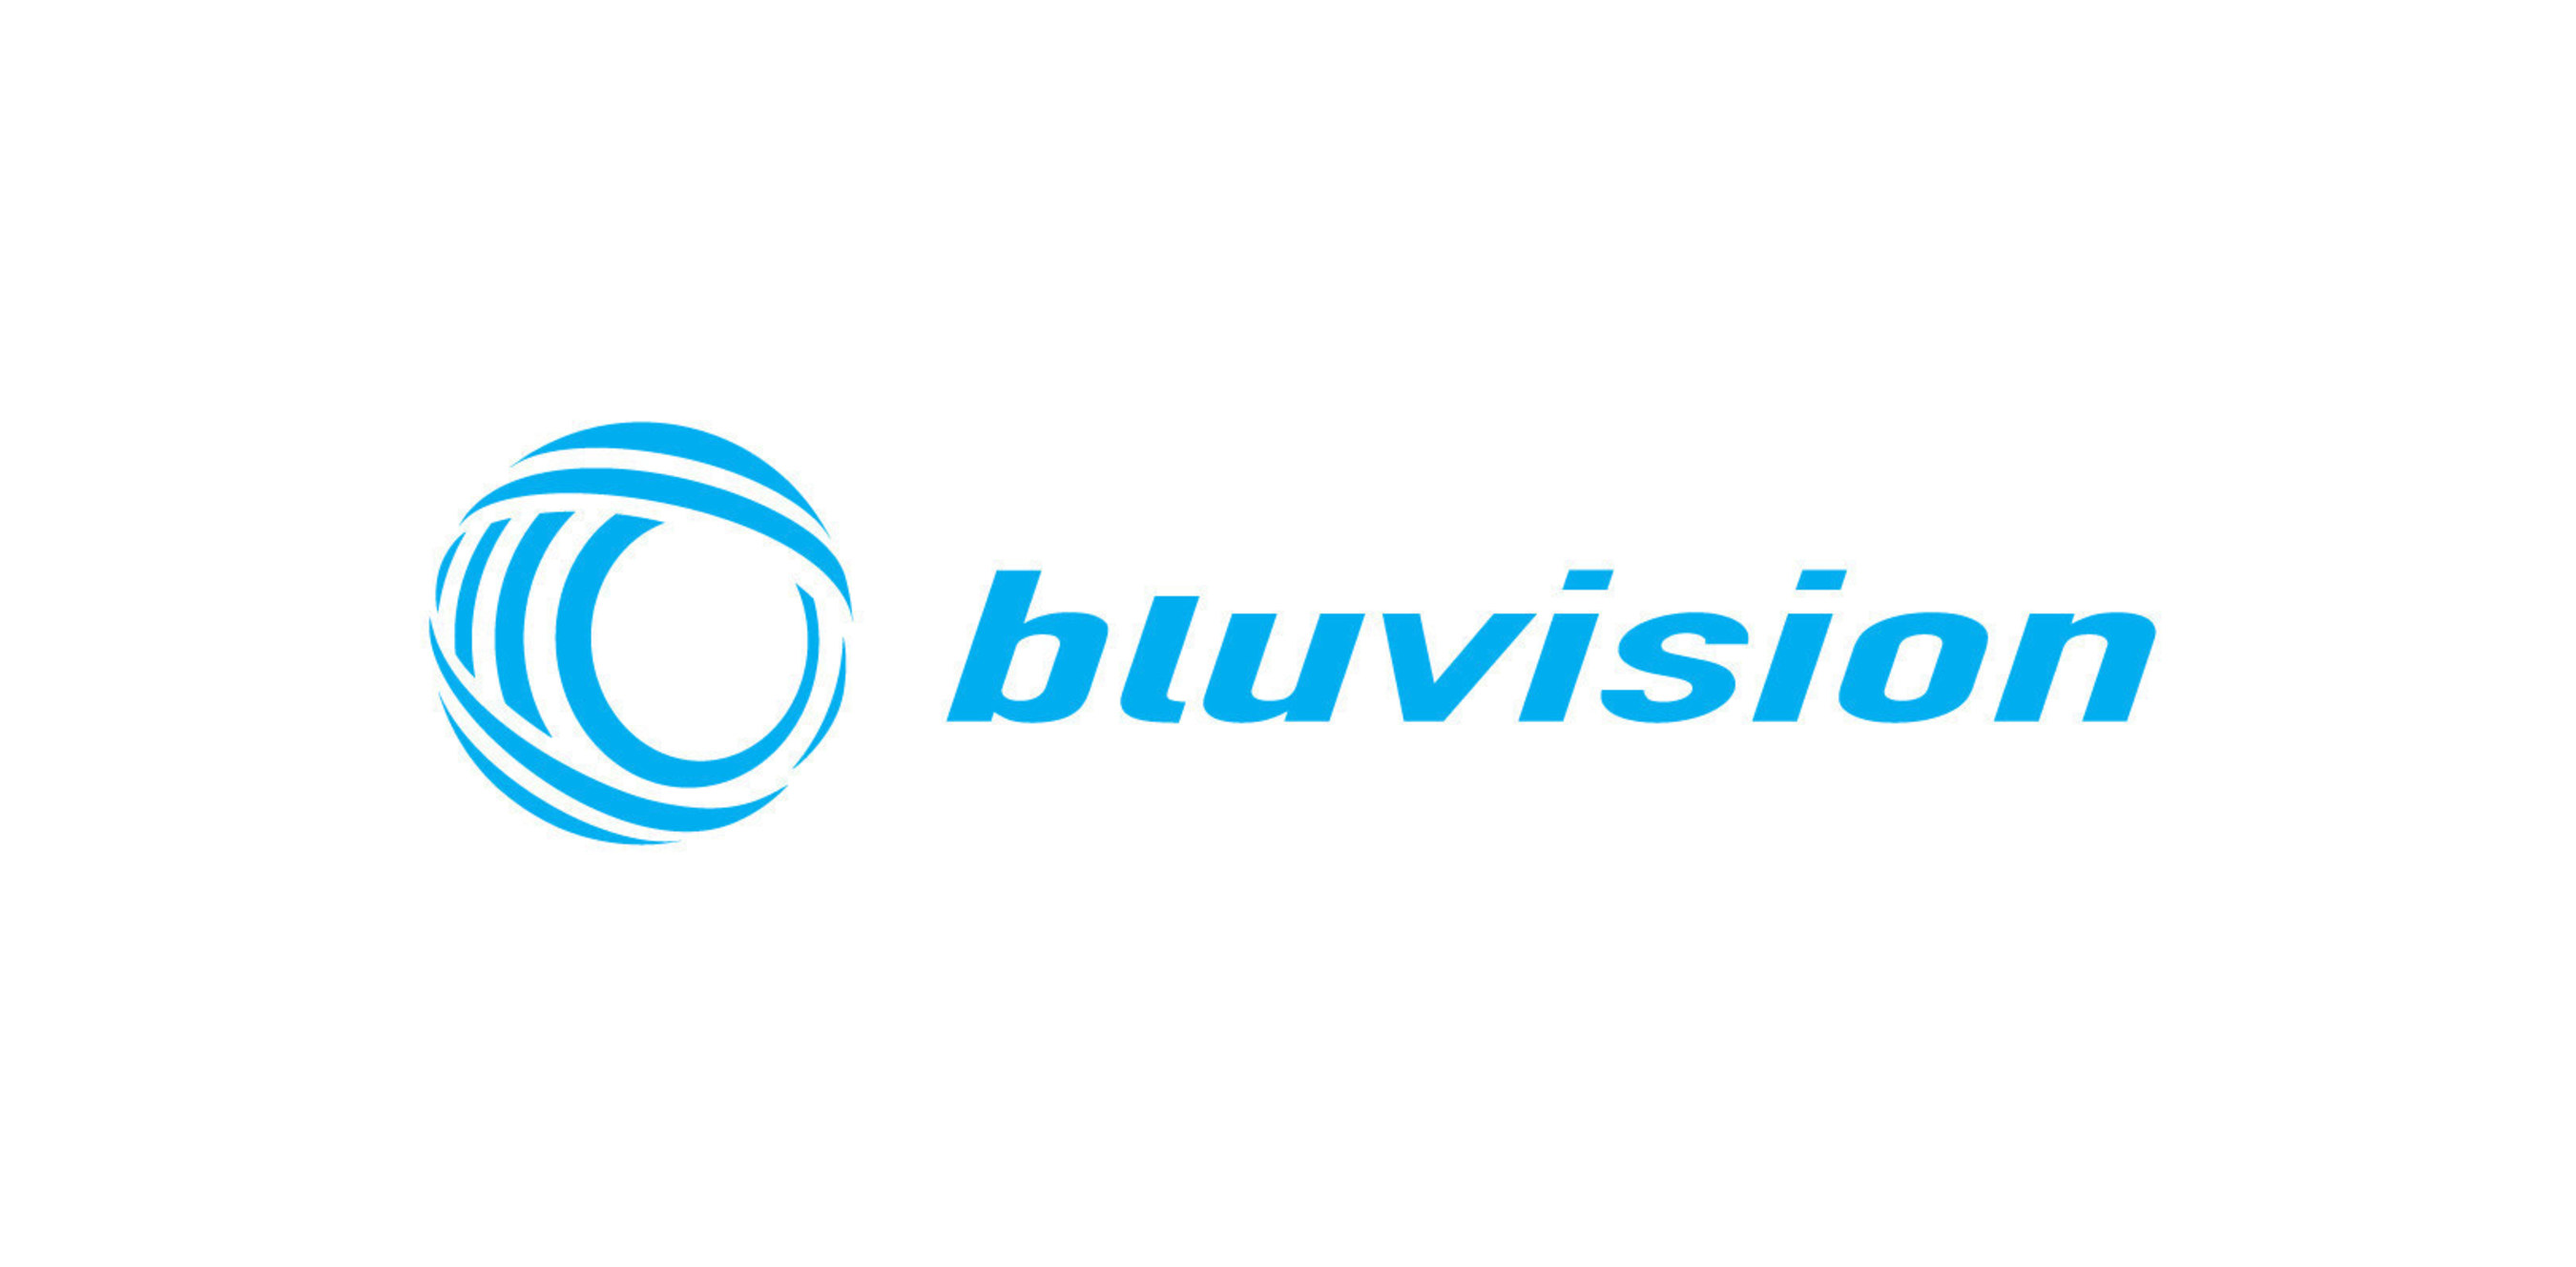 Bluvision Announces That Its Proximity5 Platform Is the First CMS Solution to Support Android's Nearby Notifications